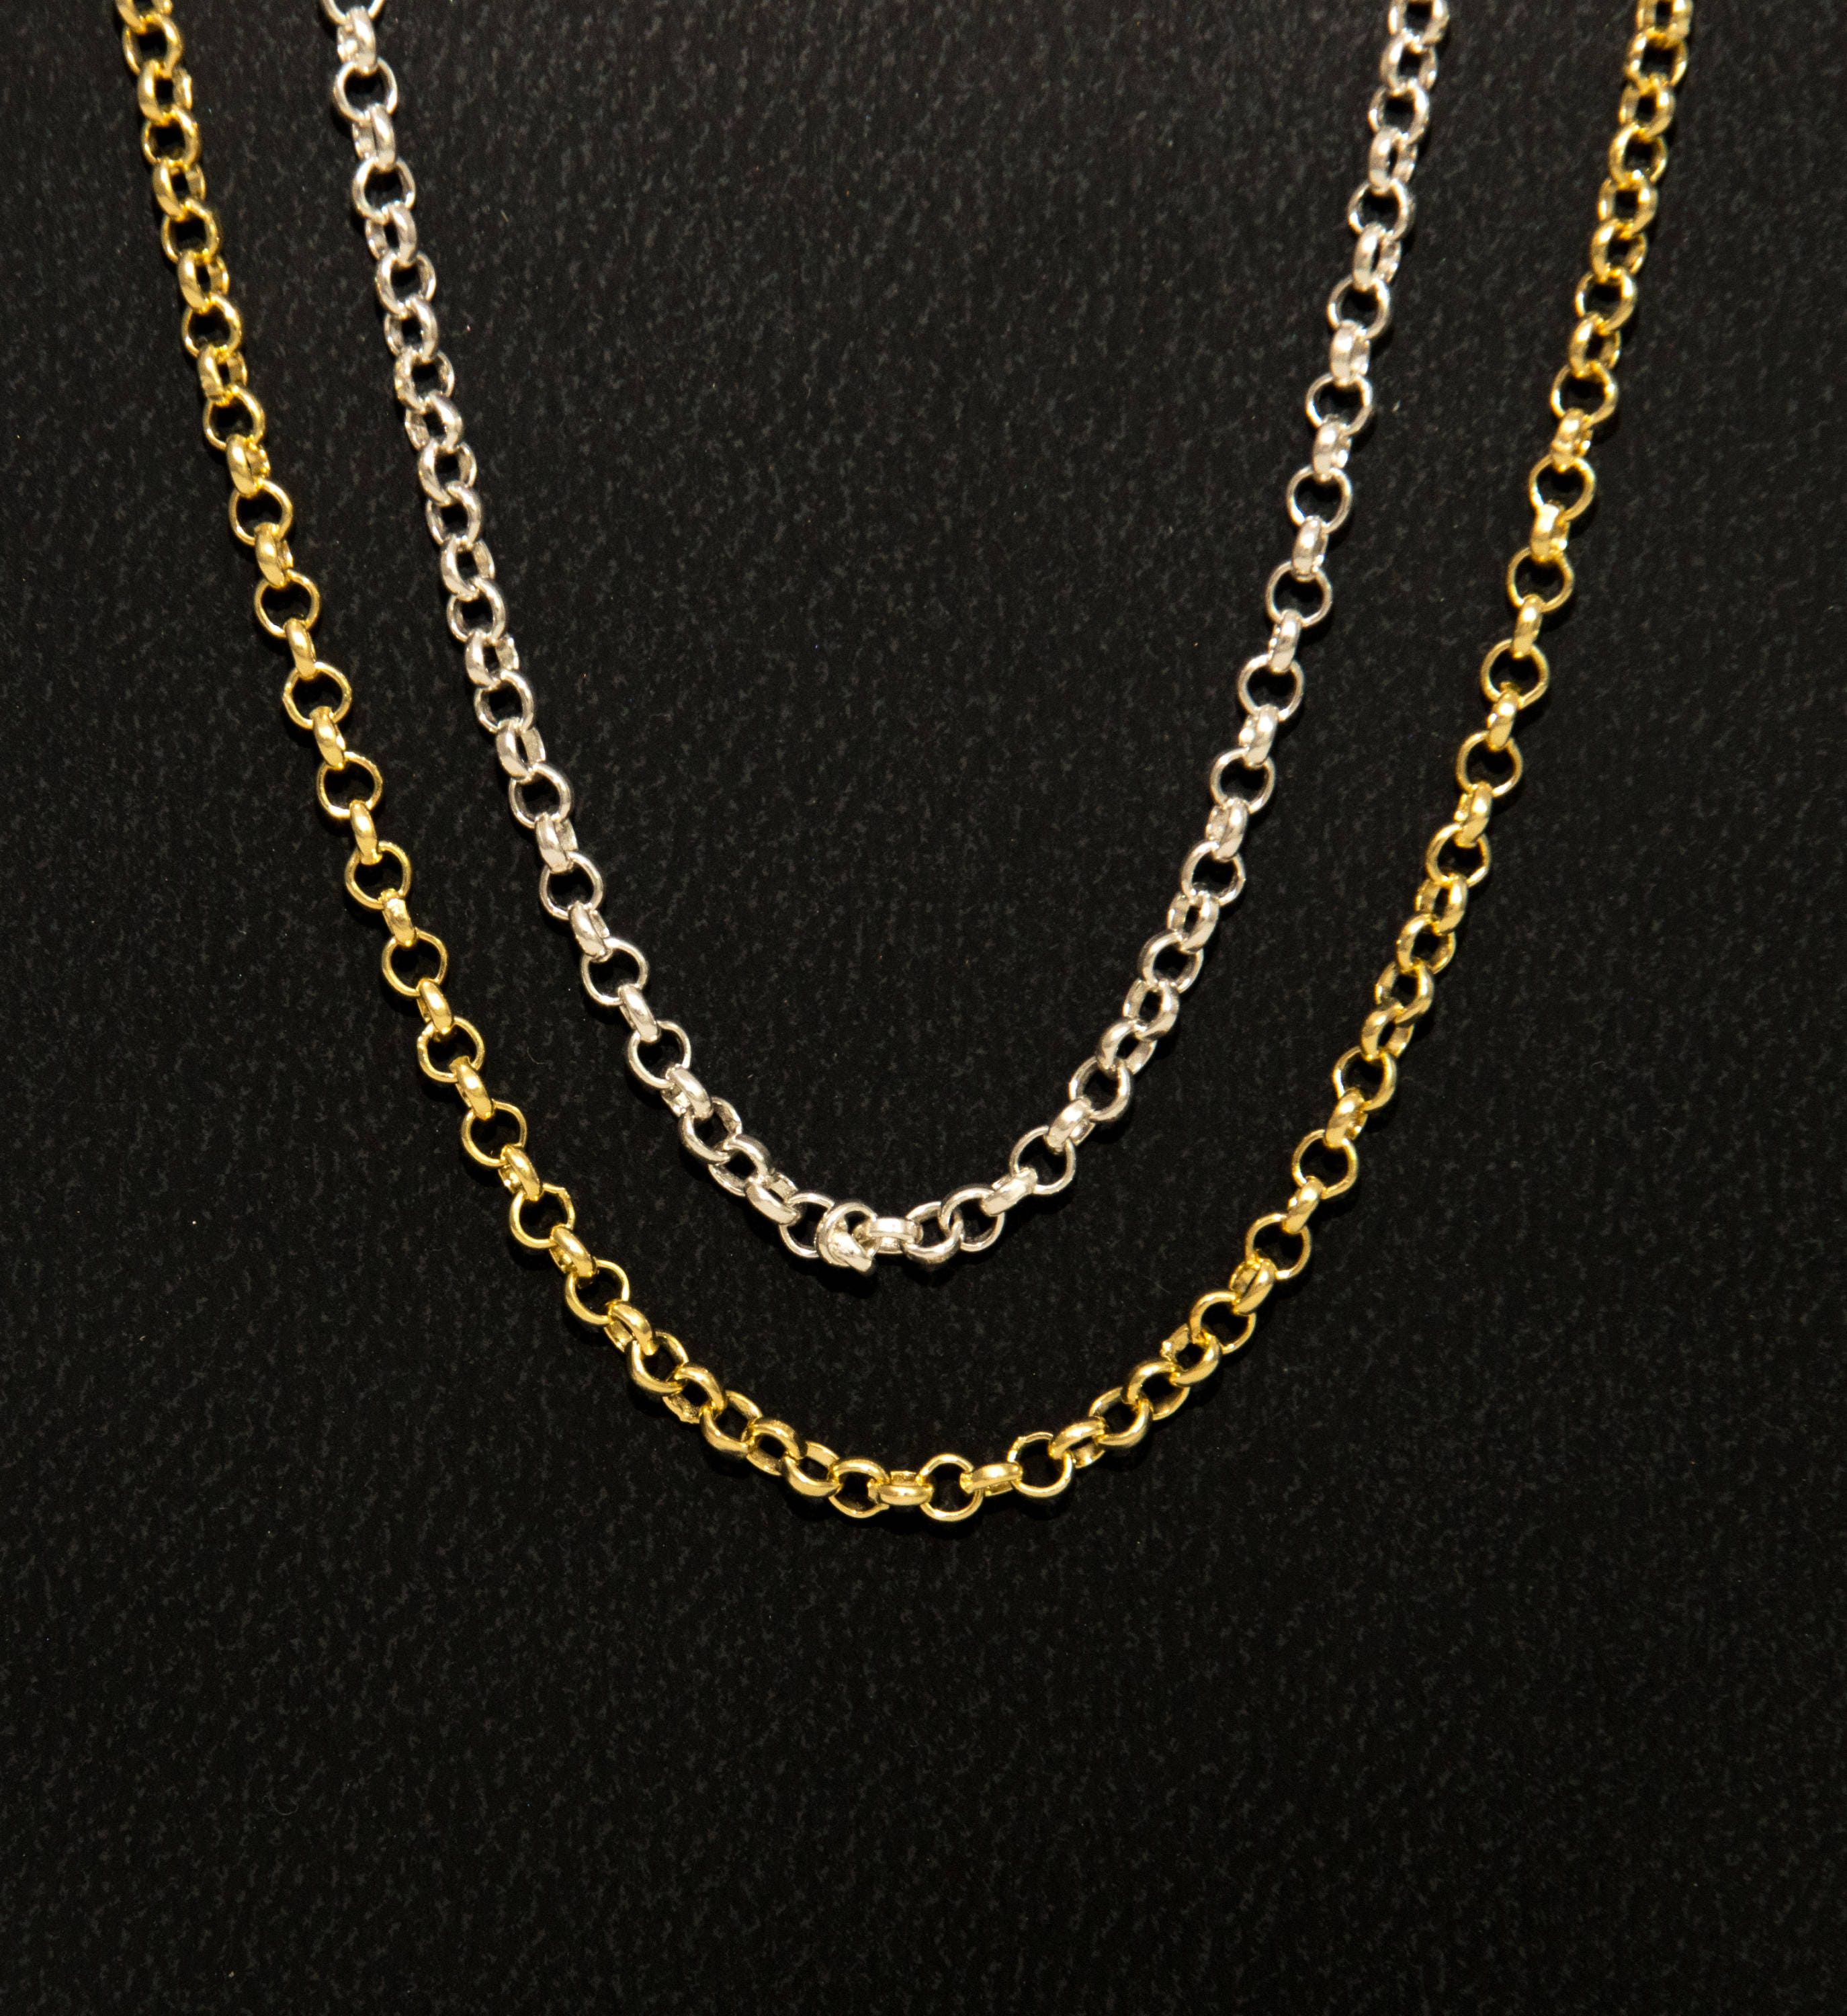 18k Solid Gold Chain, 18k Gold Rolo Chain, Round link chain, chain ...